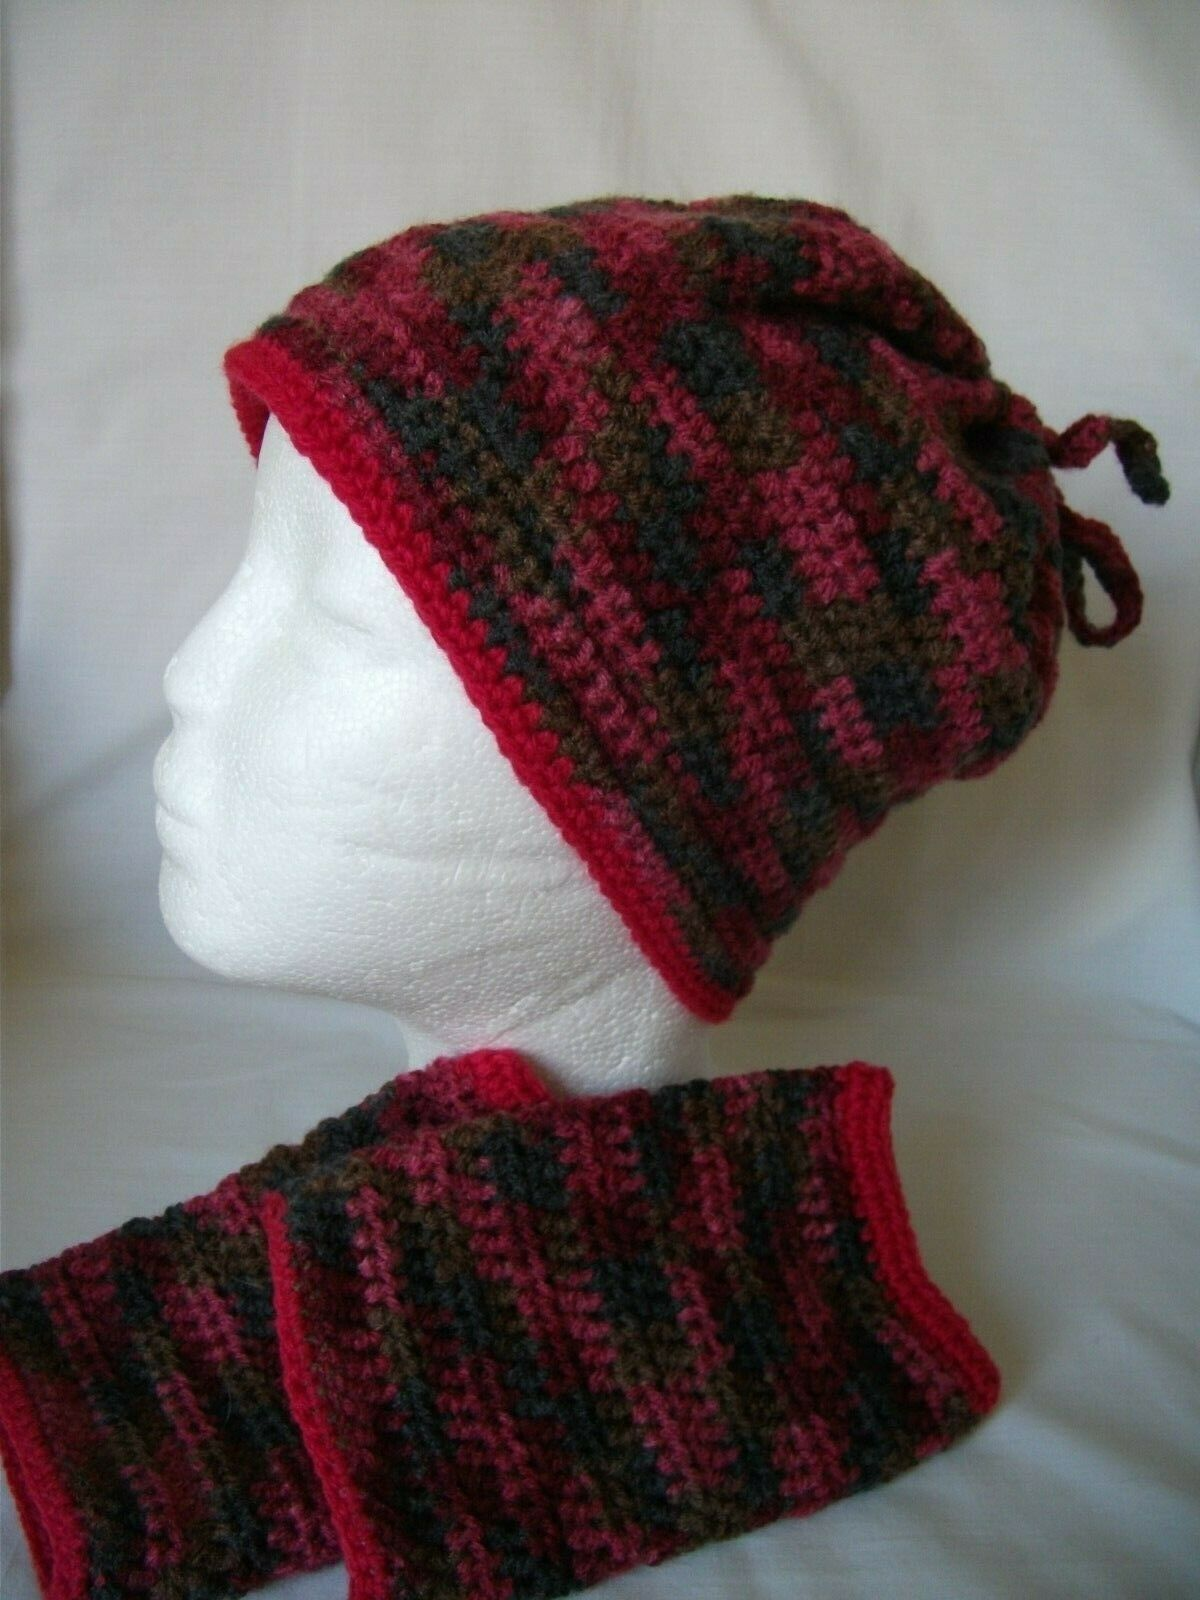 POST-FREE. HIGHLY INDIVIDUAL HAND-CROCHETED TIE-TOP HAT & WRIST-WARMERS REF 274